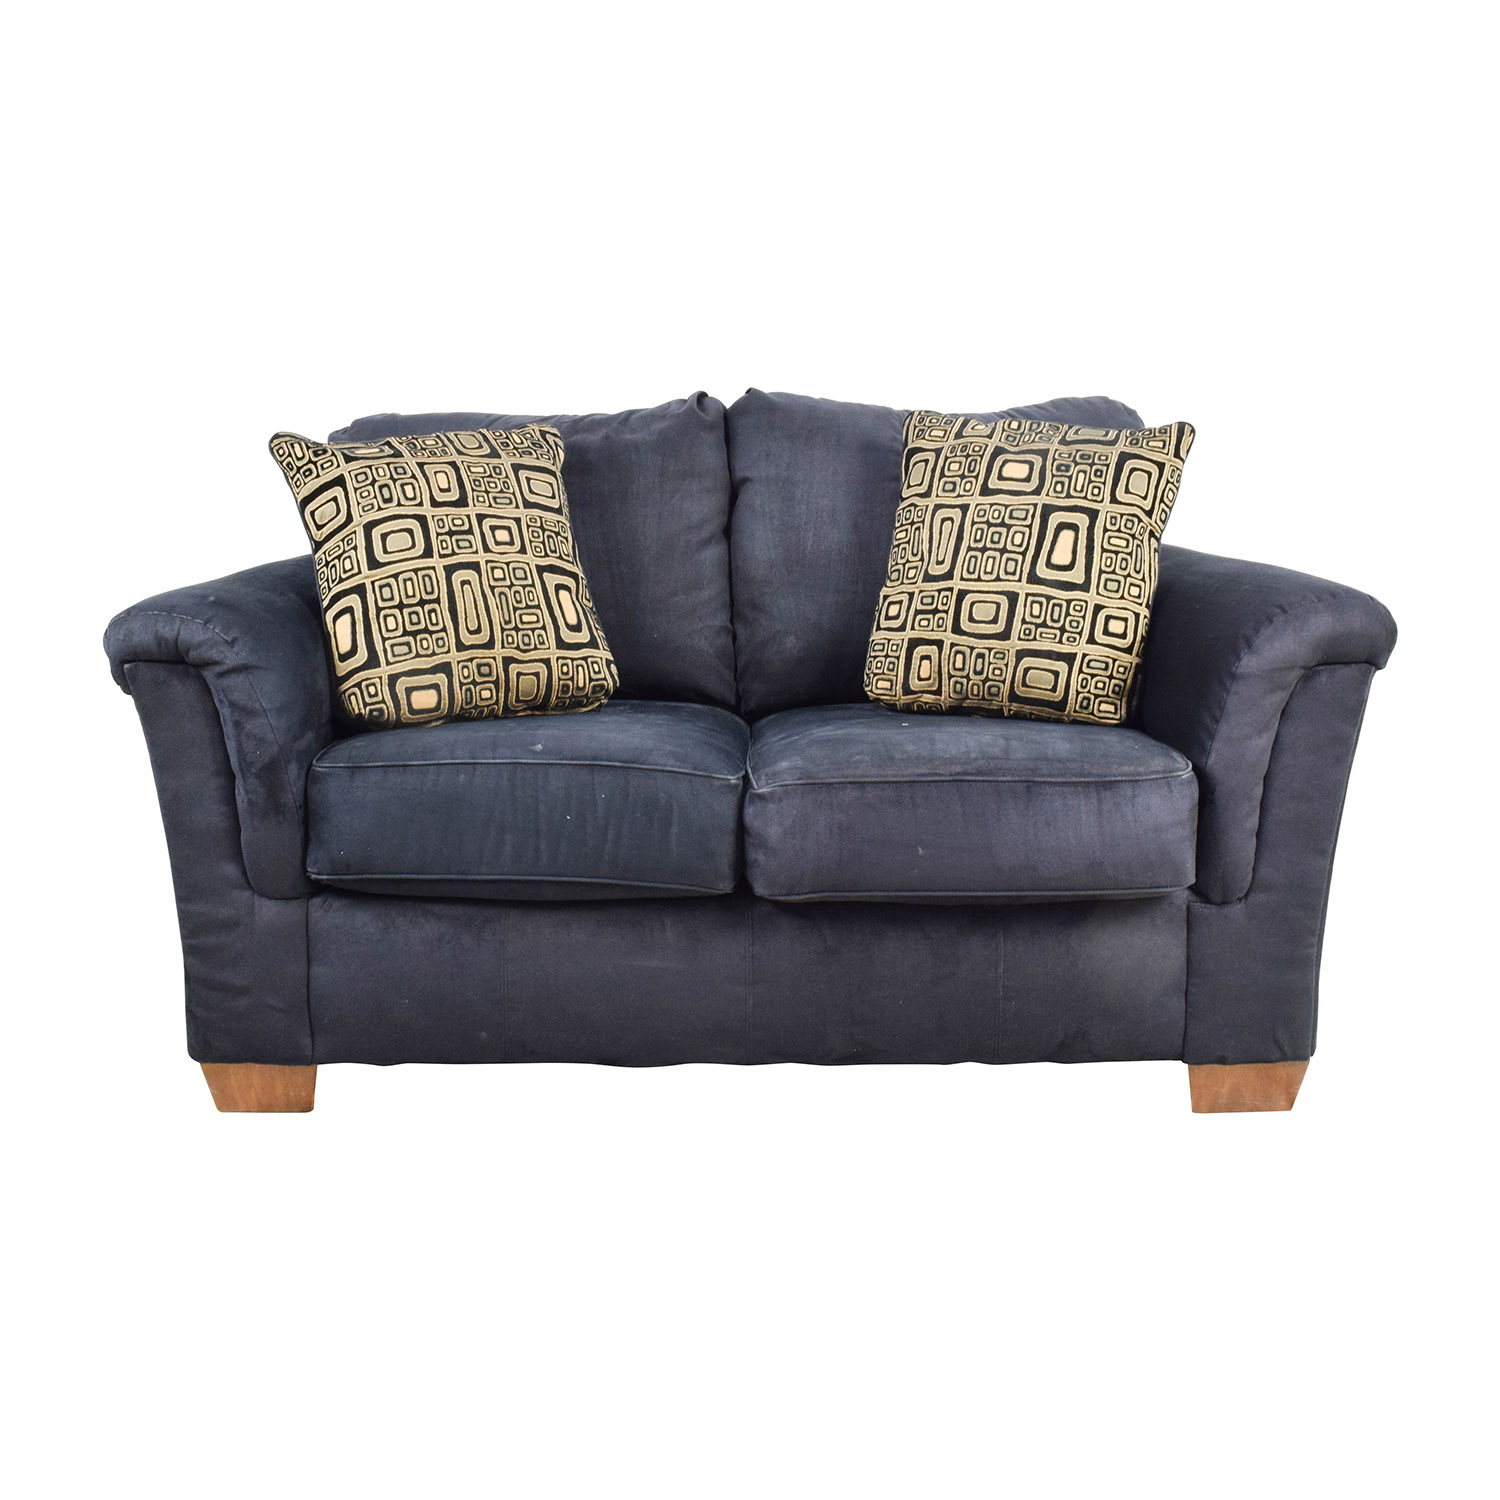 87% OFF Ashley Furniture Ashley Furniture Janley Loveseat Sofas